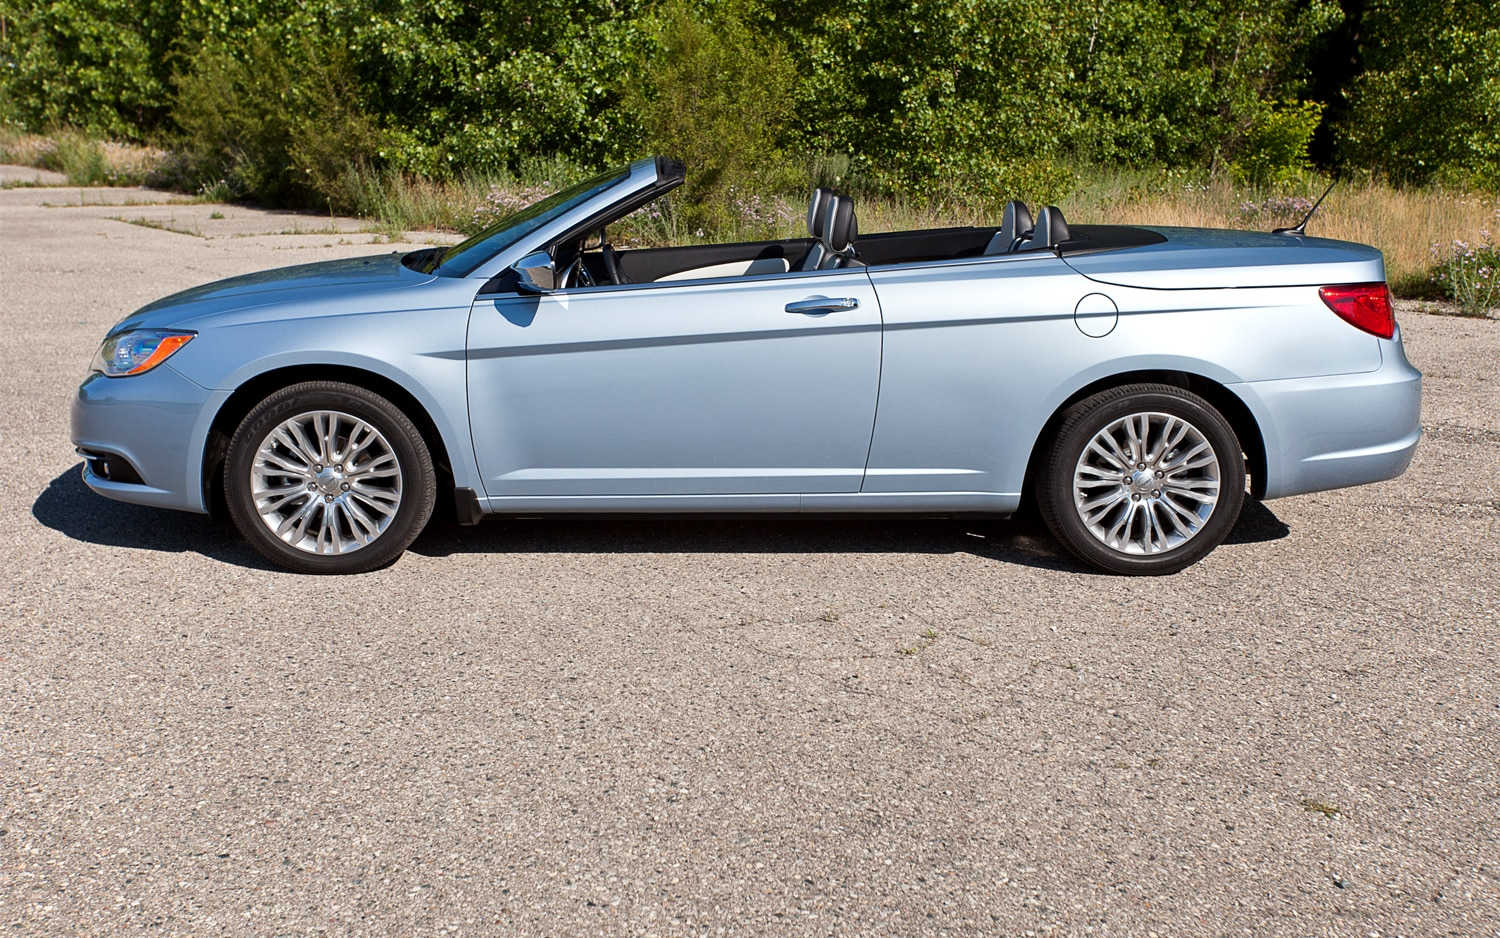 The Driving Position In Chrysler 200 Hardtop Convertible